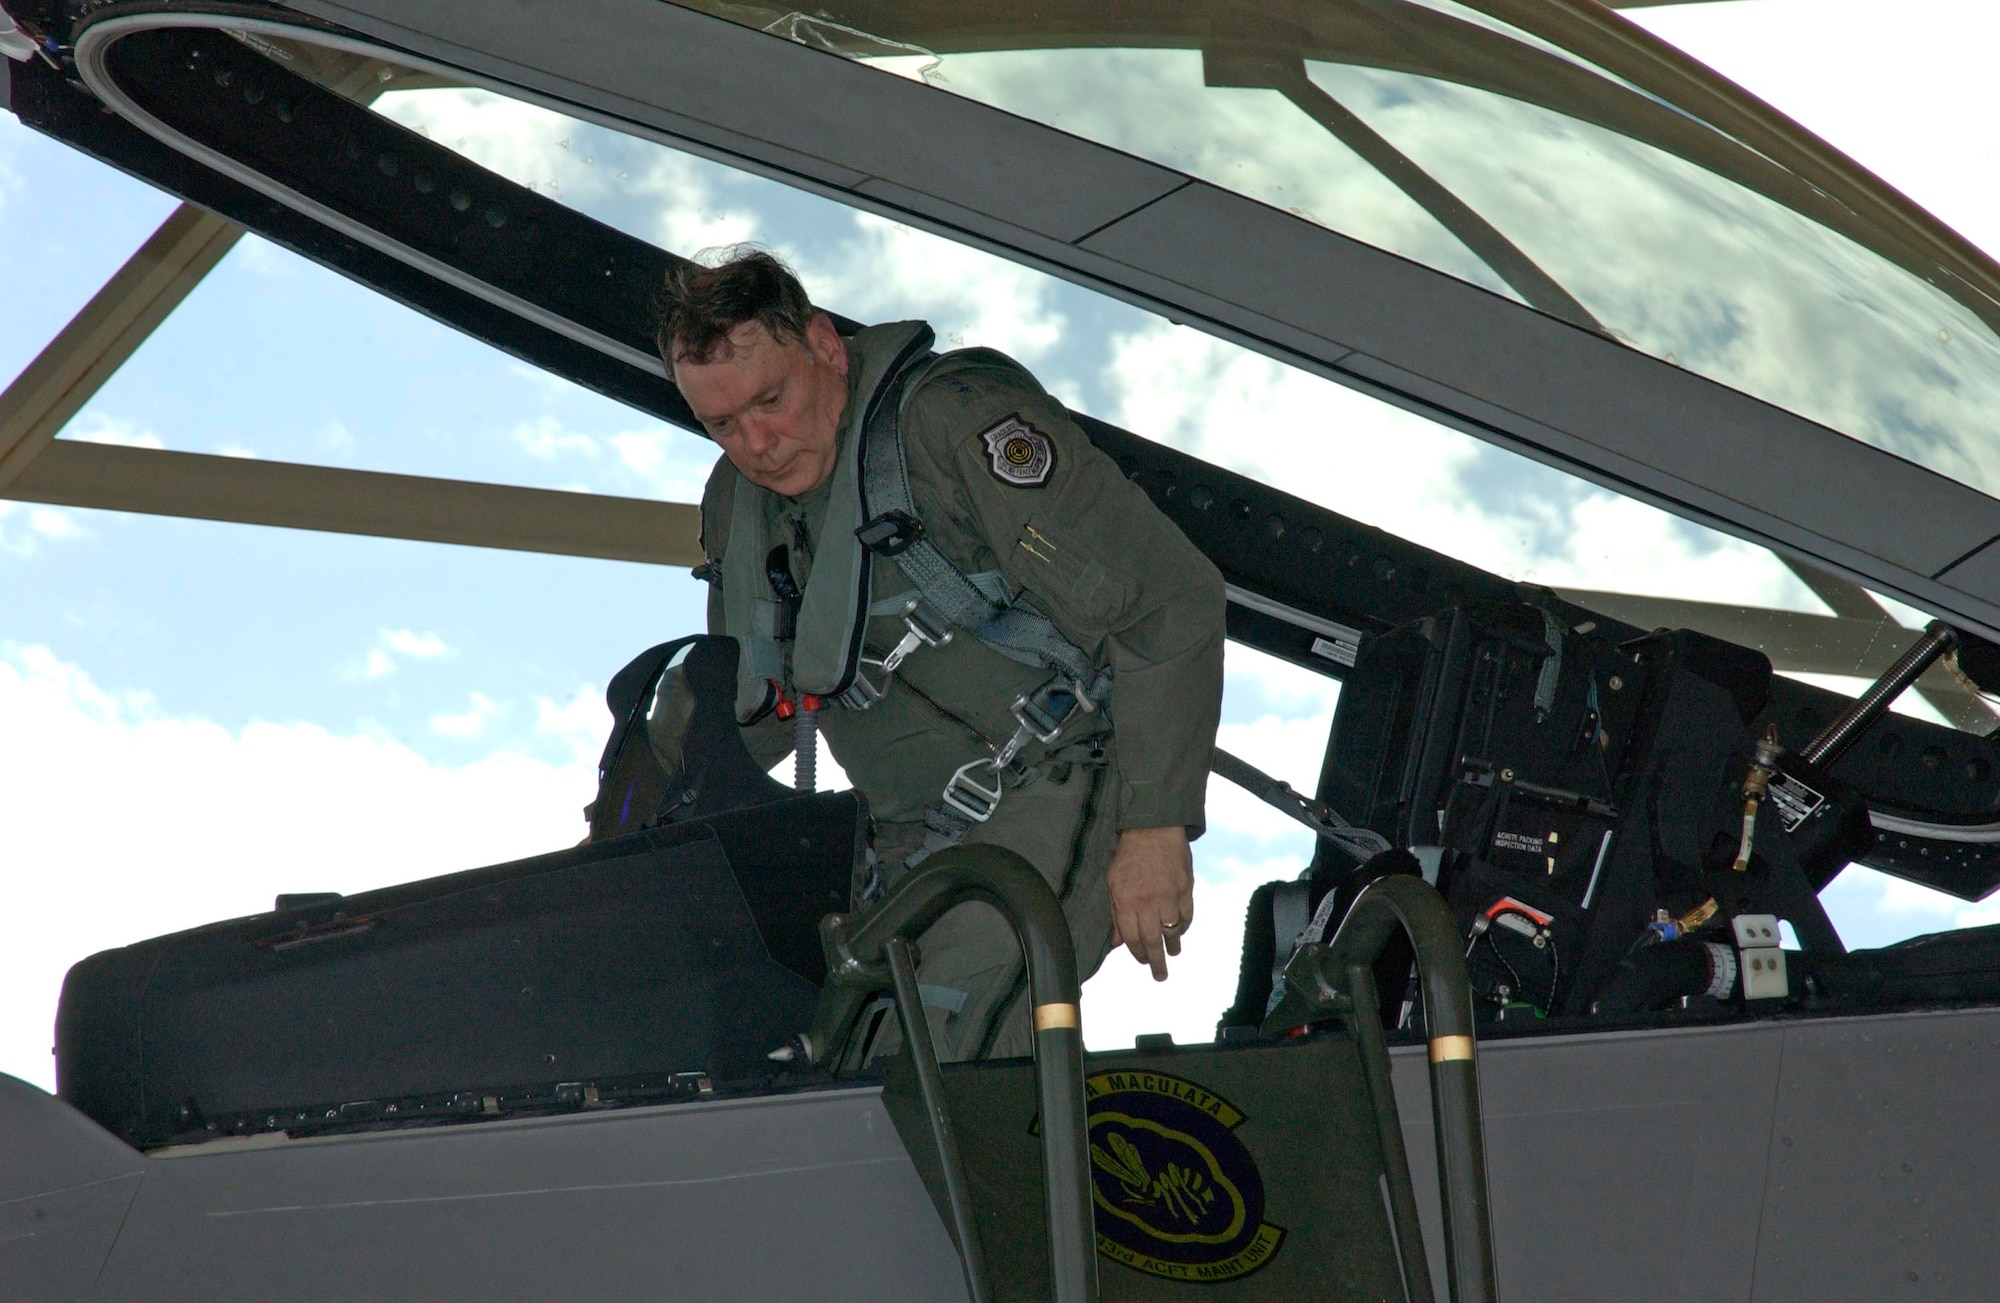 TYNDALL AIR FORCE BASE, Fla. -- Air Force Chief of Staff Gen. John P. Jumper exits an F/A-22 Raptor following his qualification flight here.  The general said he participated in a 2-week qualification training program in the Raptor so he could speak with authority on the program's importance.  (U.S. Air Force photo by Lisa Norman)